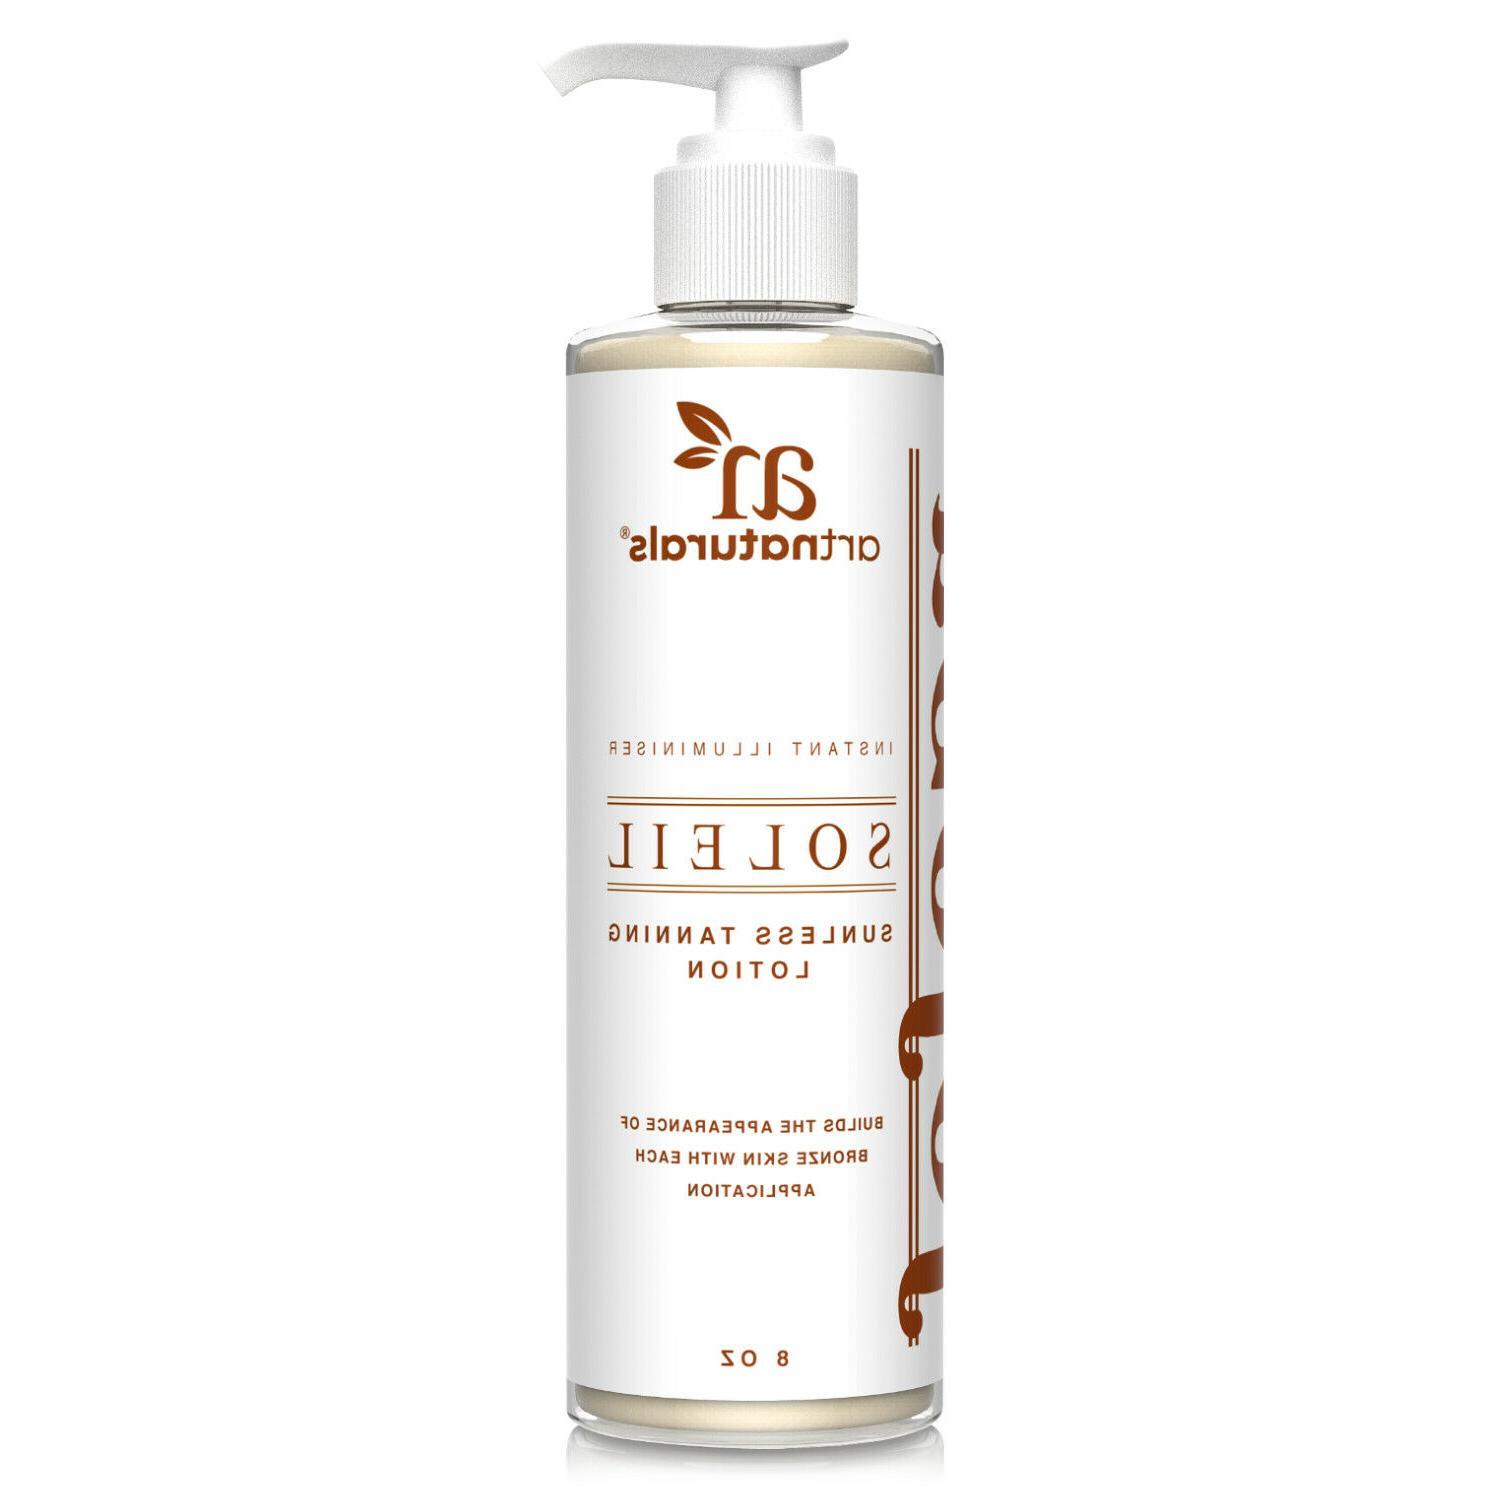 Art Naturals Protective Body Tanning Oil / Lotion 10.0 oz Sp